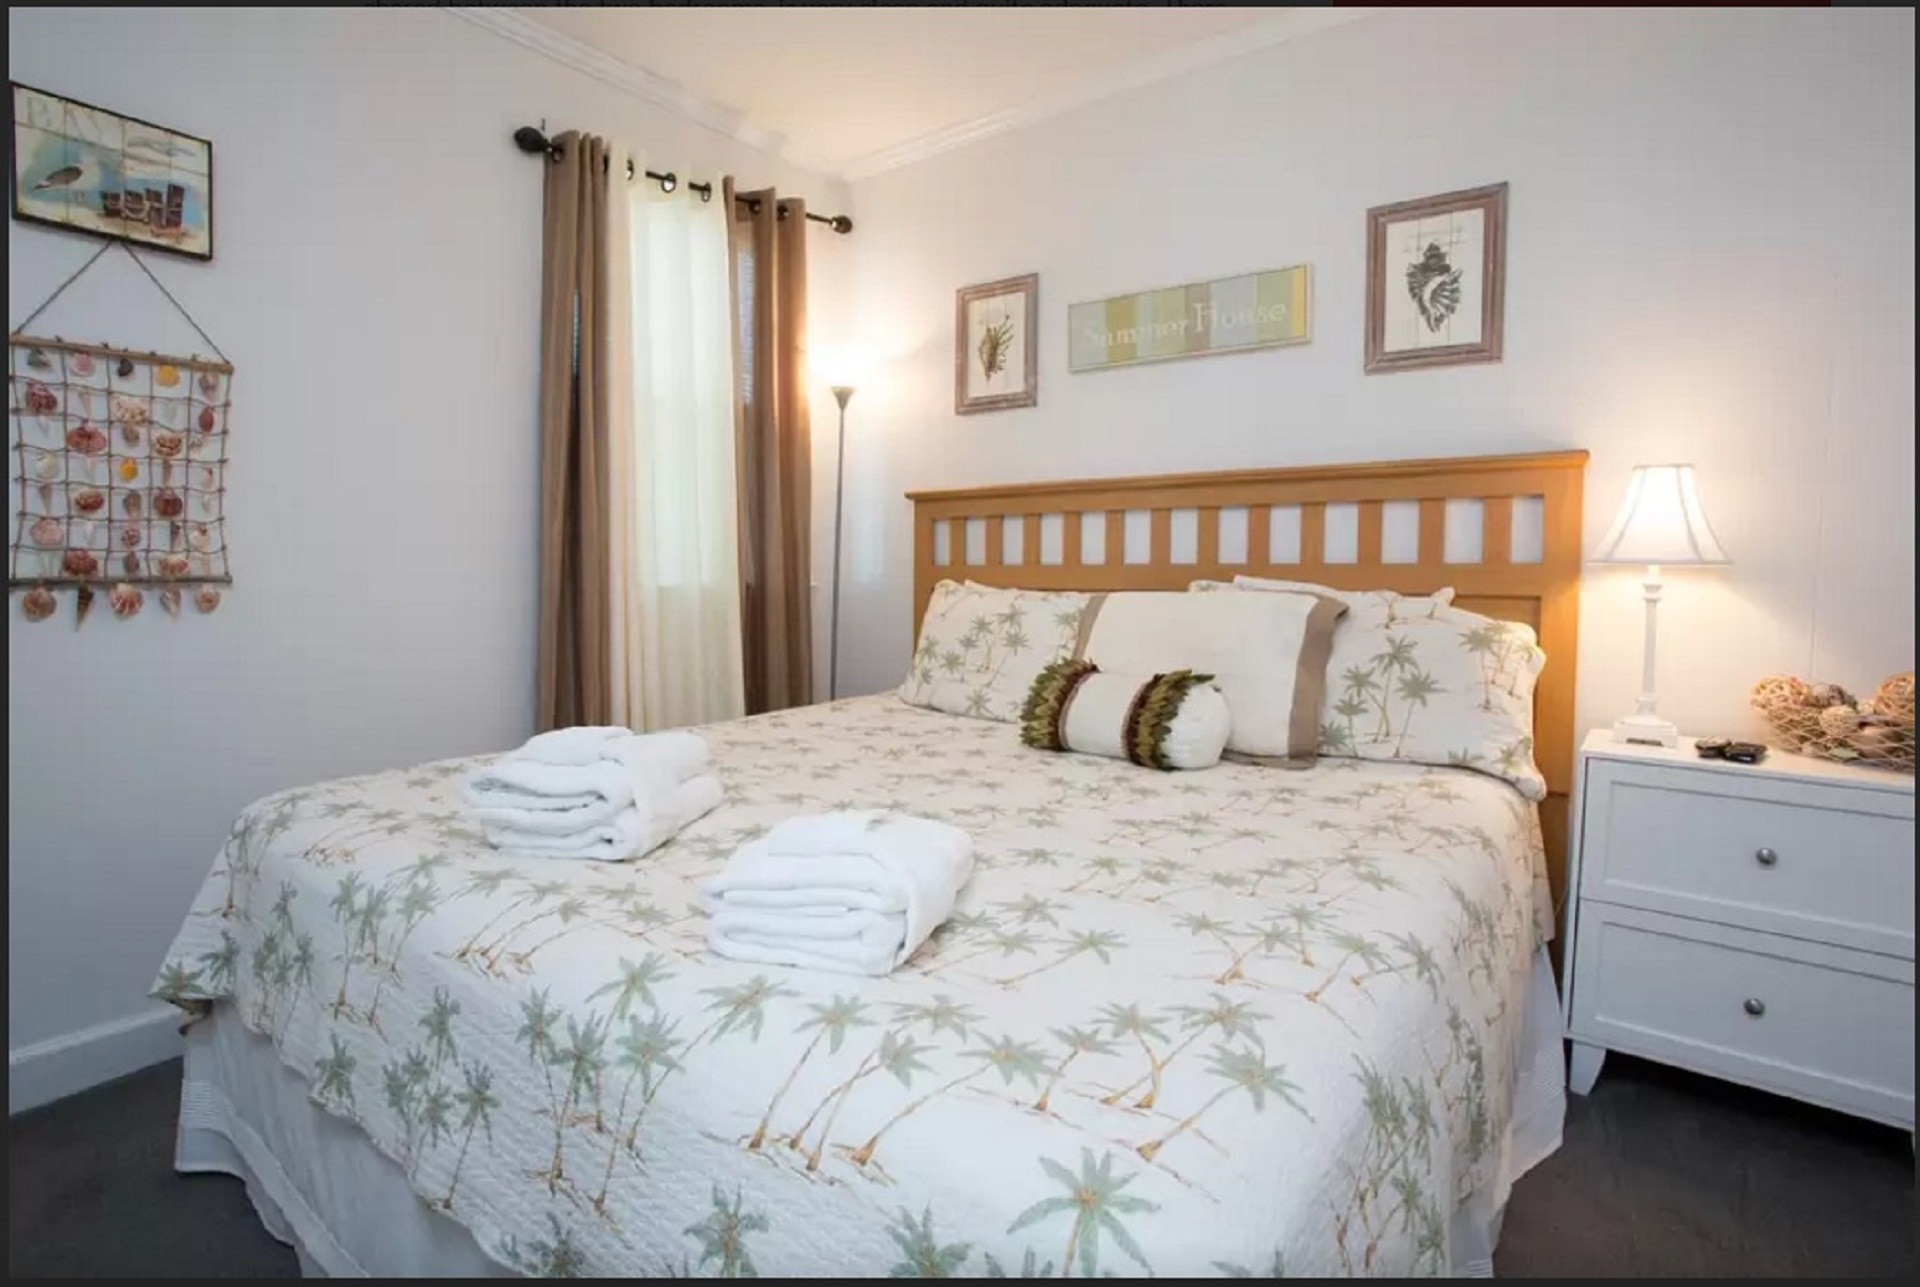 The 2nd spacious, comfortable king size bed, suitable for a couple or their kids